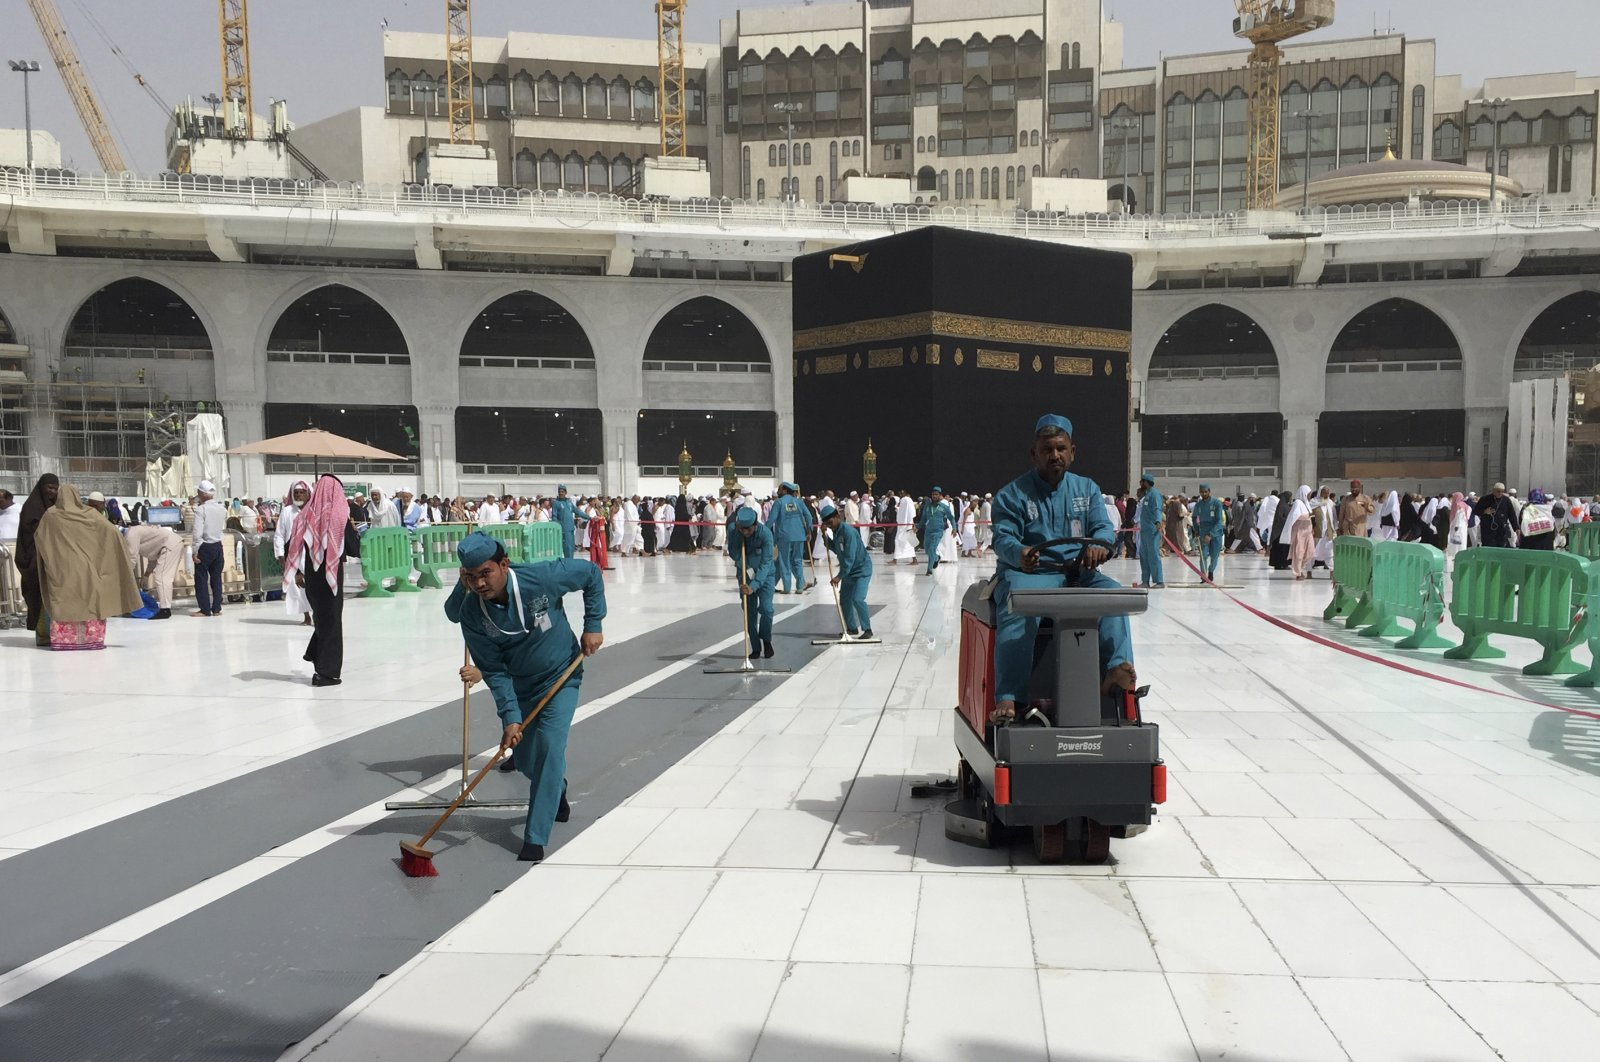 Workers clean the Grand Mosque, during the minor pilgrimage, known as Umrah, in the Muslim holy city of Mecca, Saudi Arabia, March 2, 2020. (AP Photo)